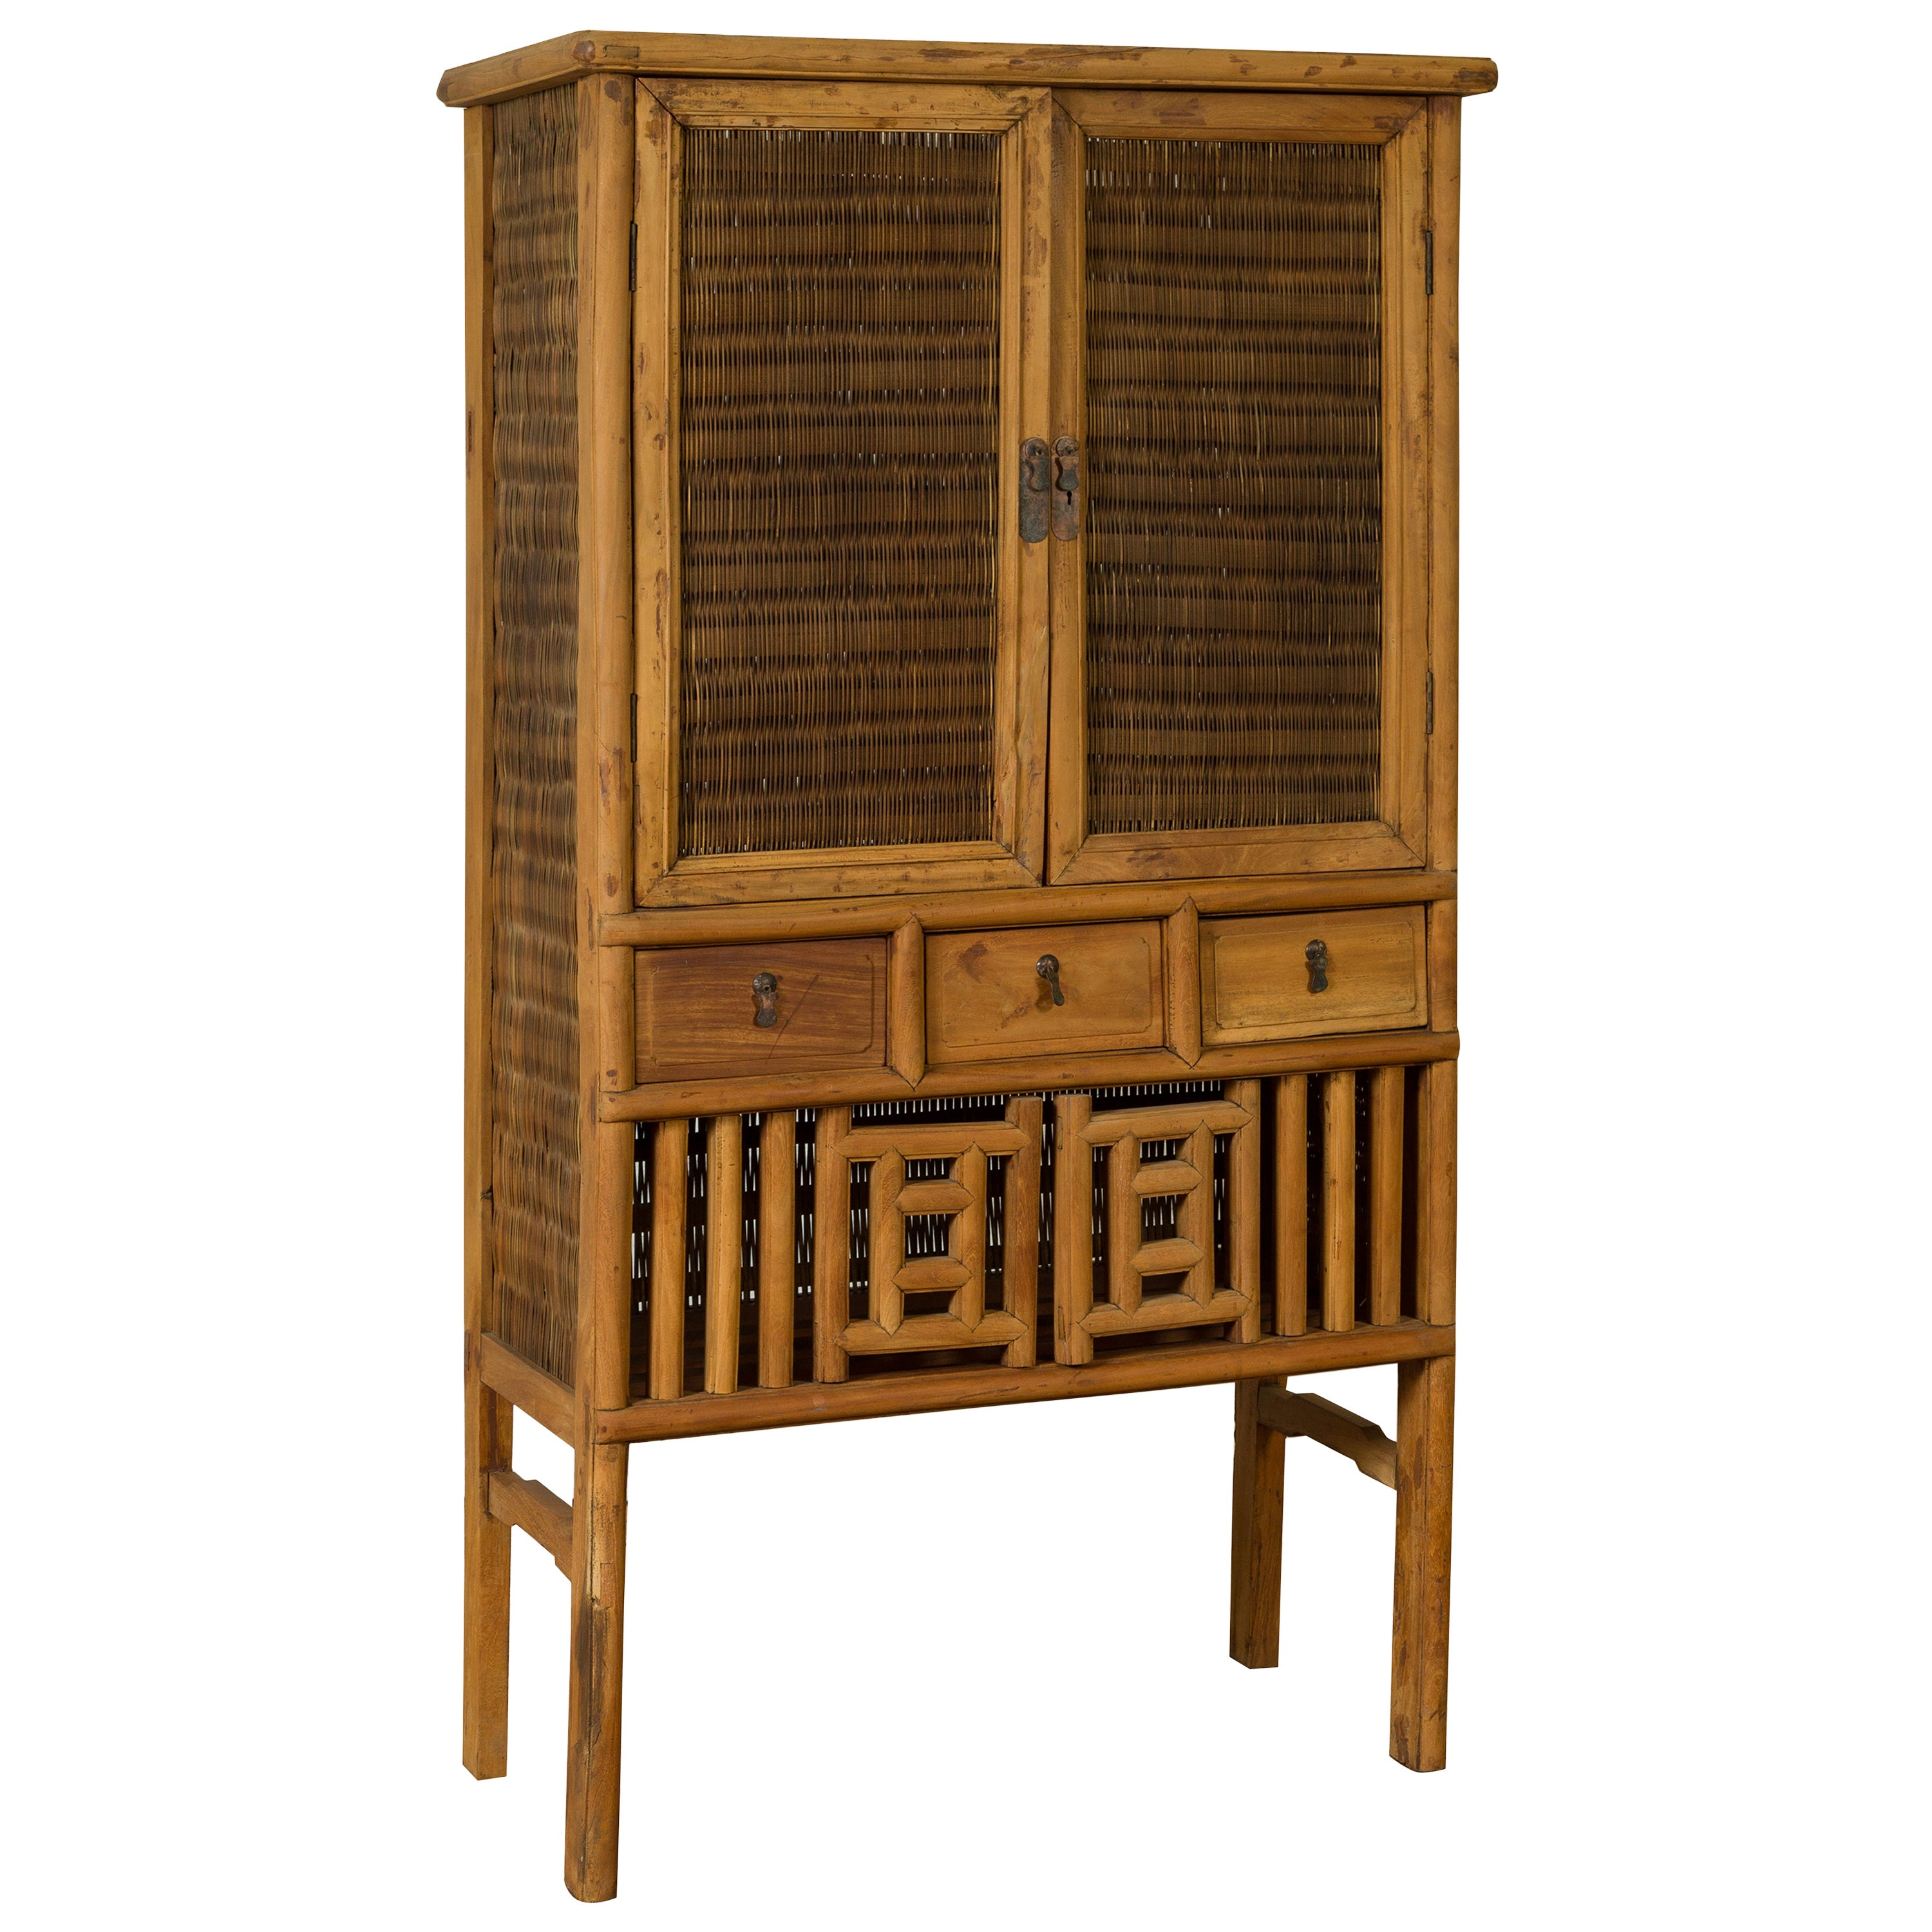 Indonesian Cabinet with Rattan Doors, Drawers and Fretwork Sliding Panels